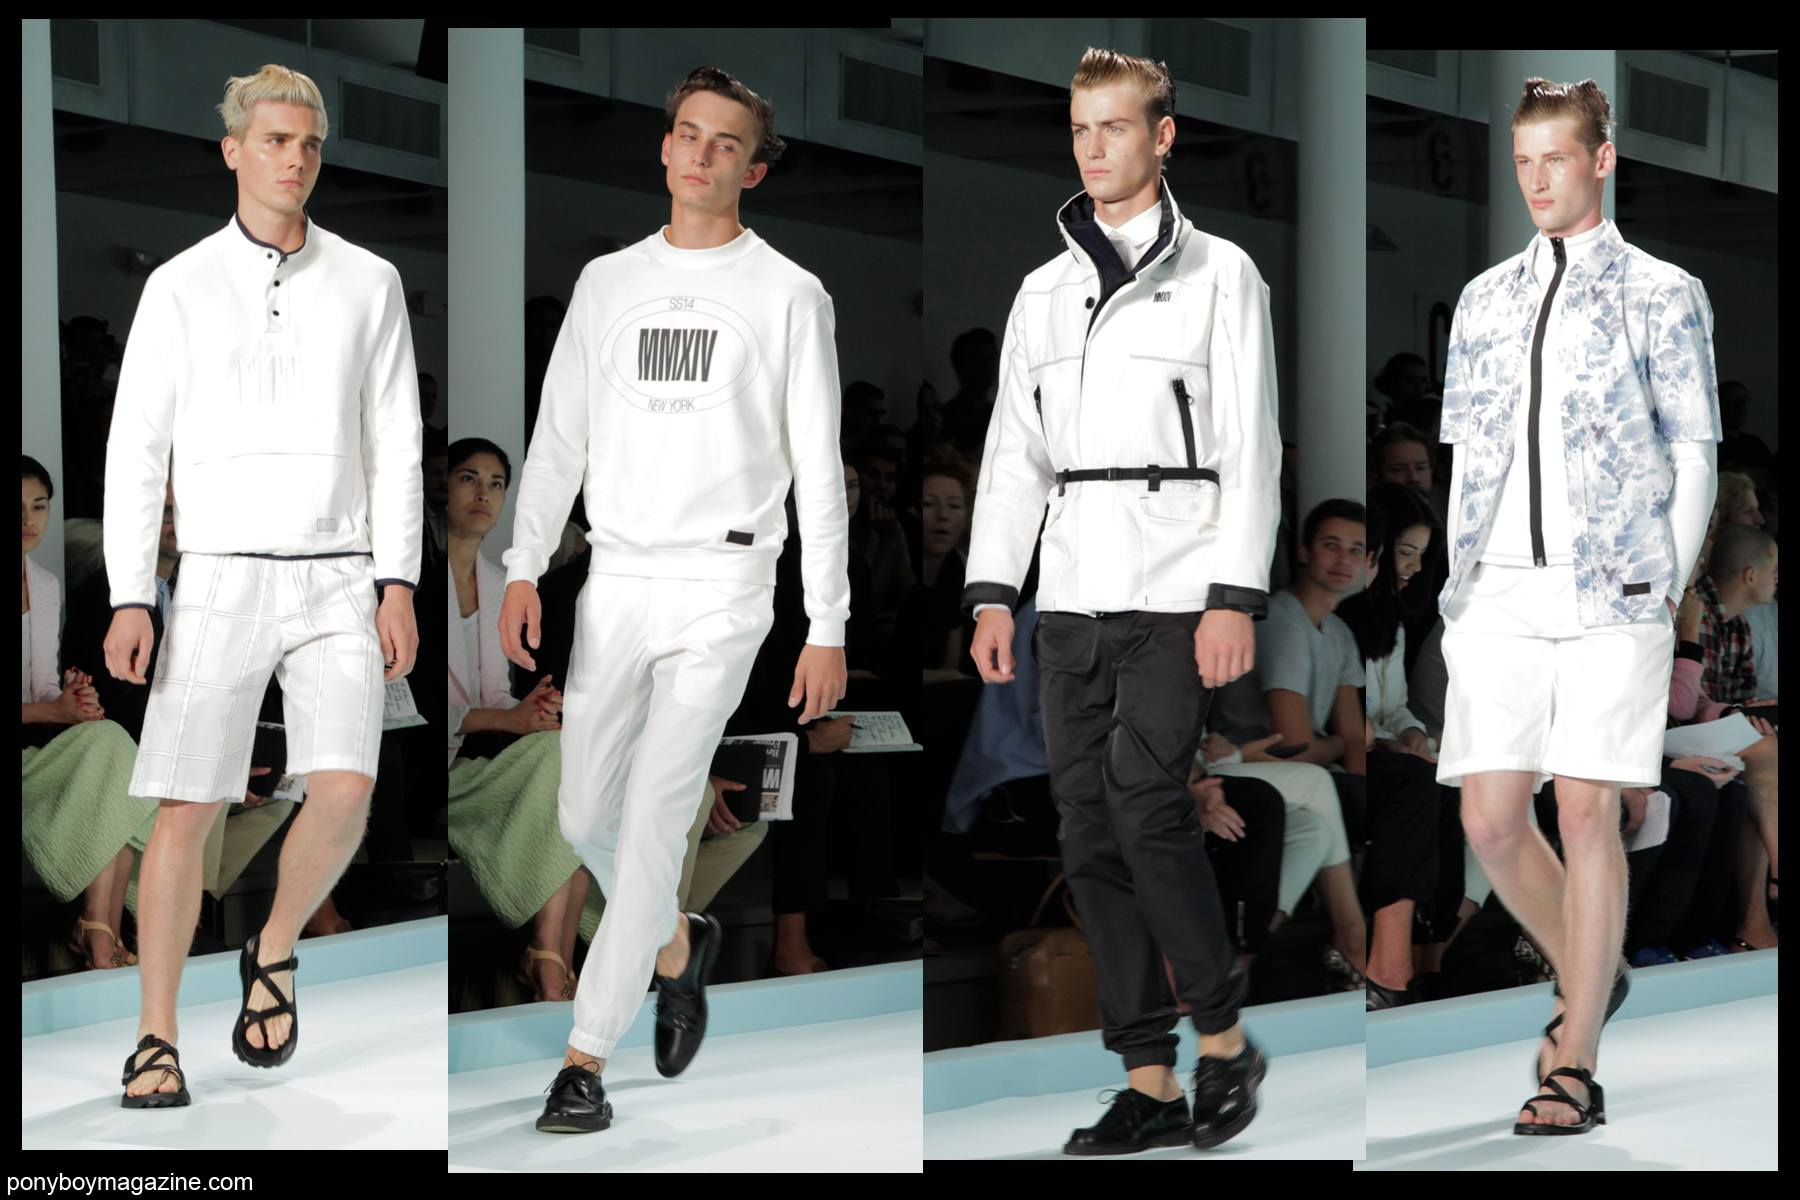 Models walk the runway for Patrik Ervell SS2014, photographed by Alexander Thompson for Ponyboy Magazine.